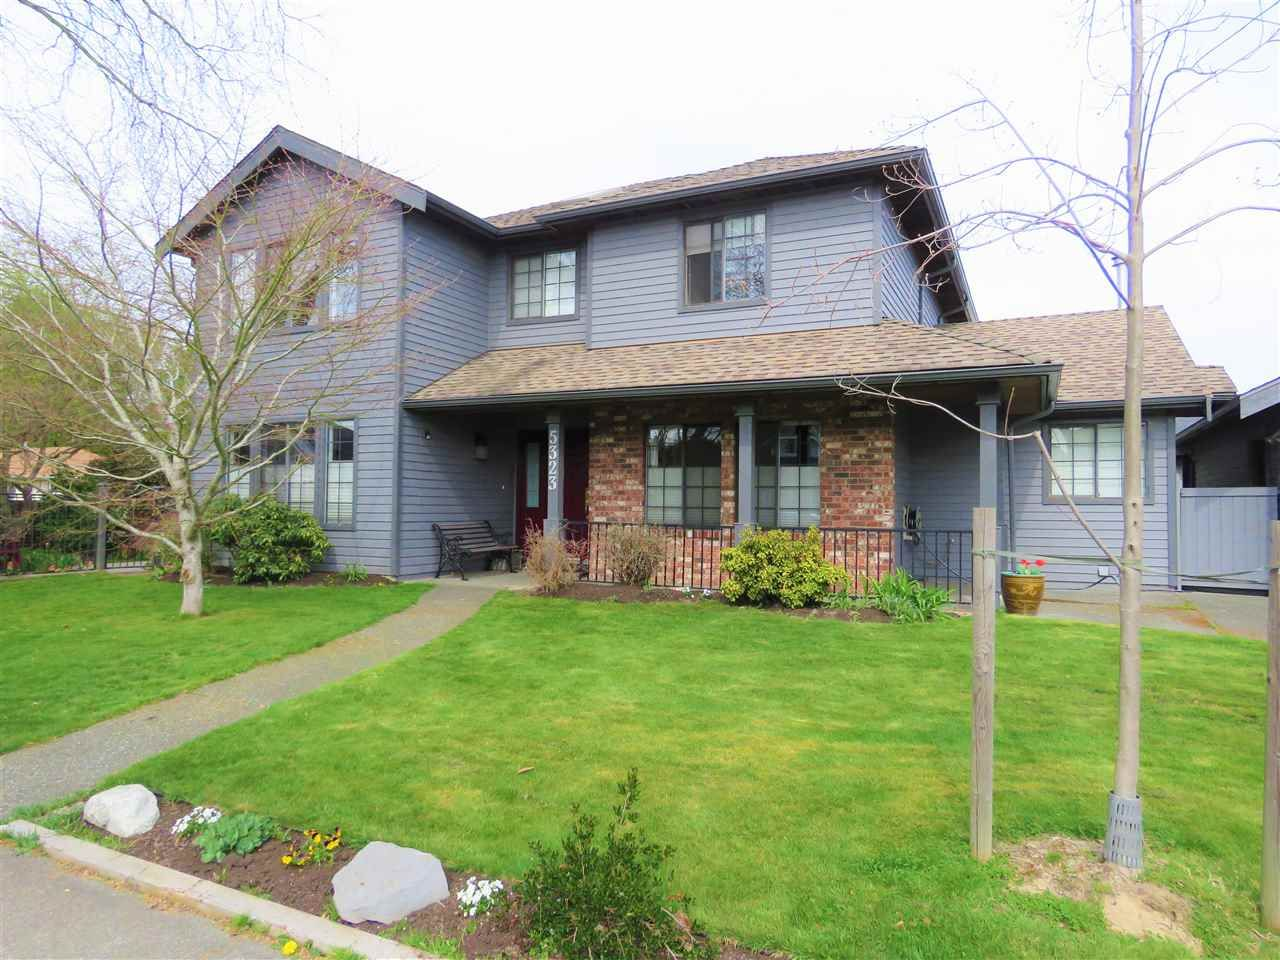 """Main Photo: 5323 LAUREL Gate in Delta: Hawthorne House for sale in """"VICTORY SOUTH"""" (Ladner)  : MLS®# R2397995"""